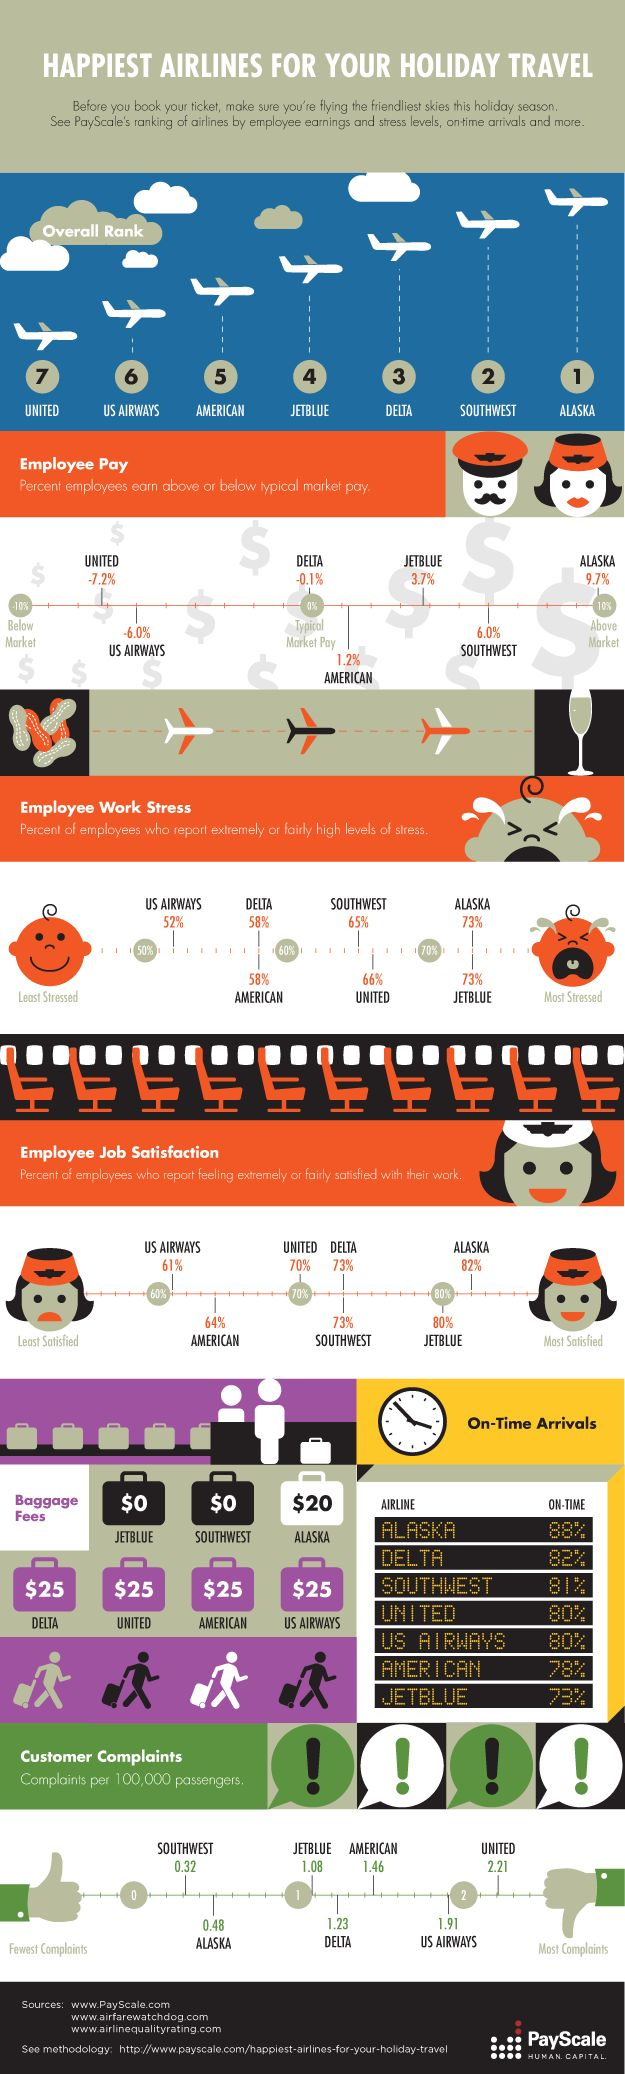 Holiday #Airline #Travel, happiest Airlines for your holiday travel - Infographic